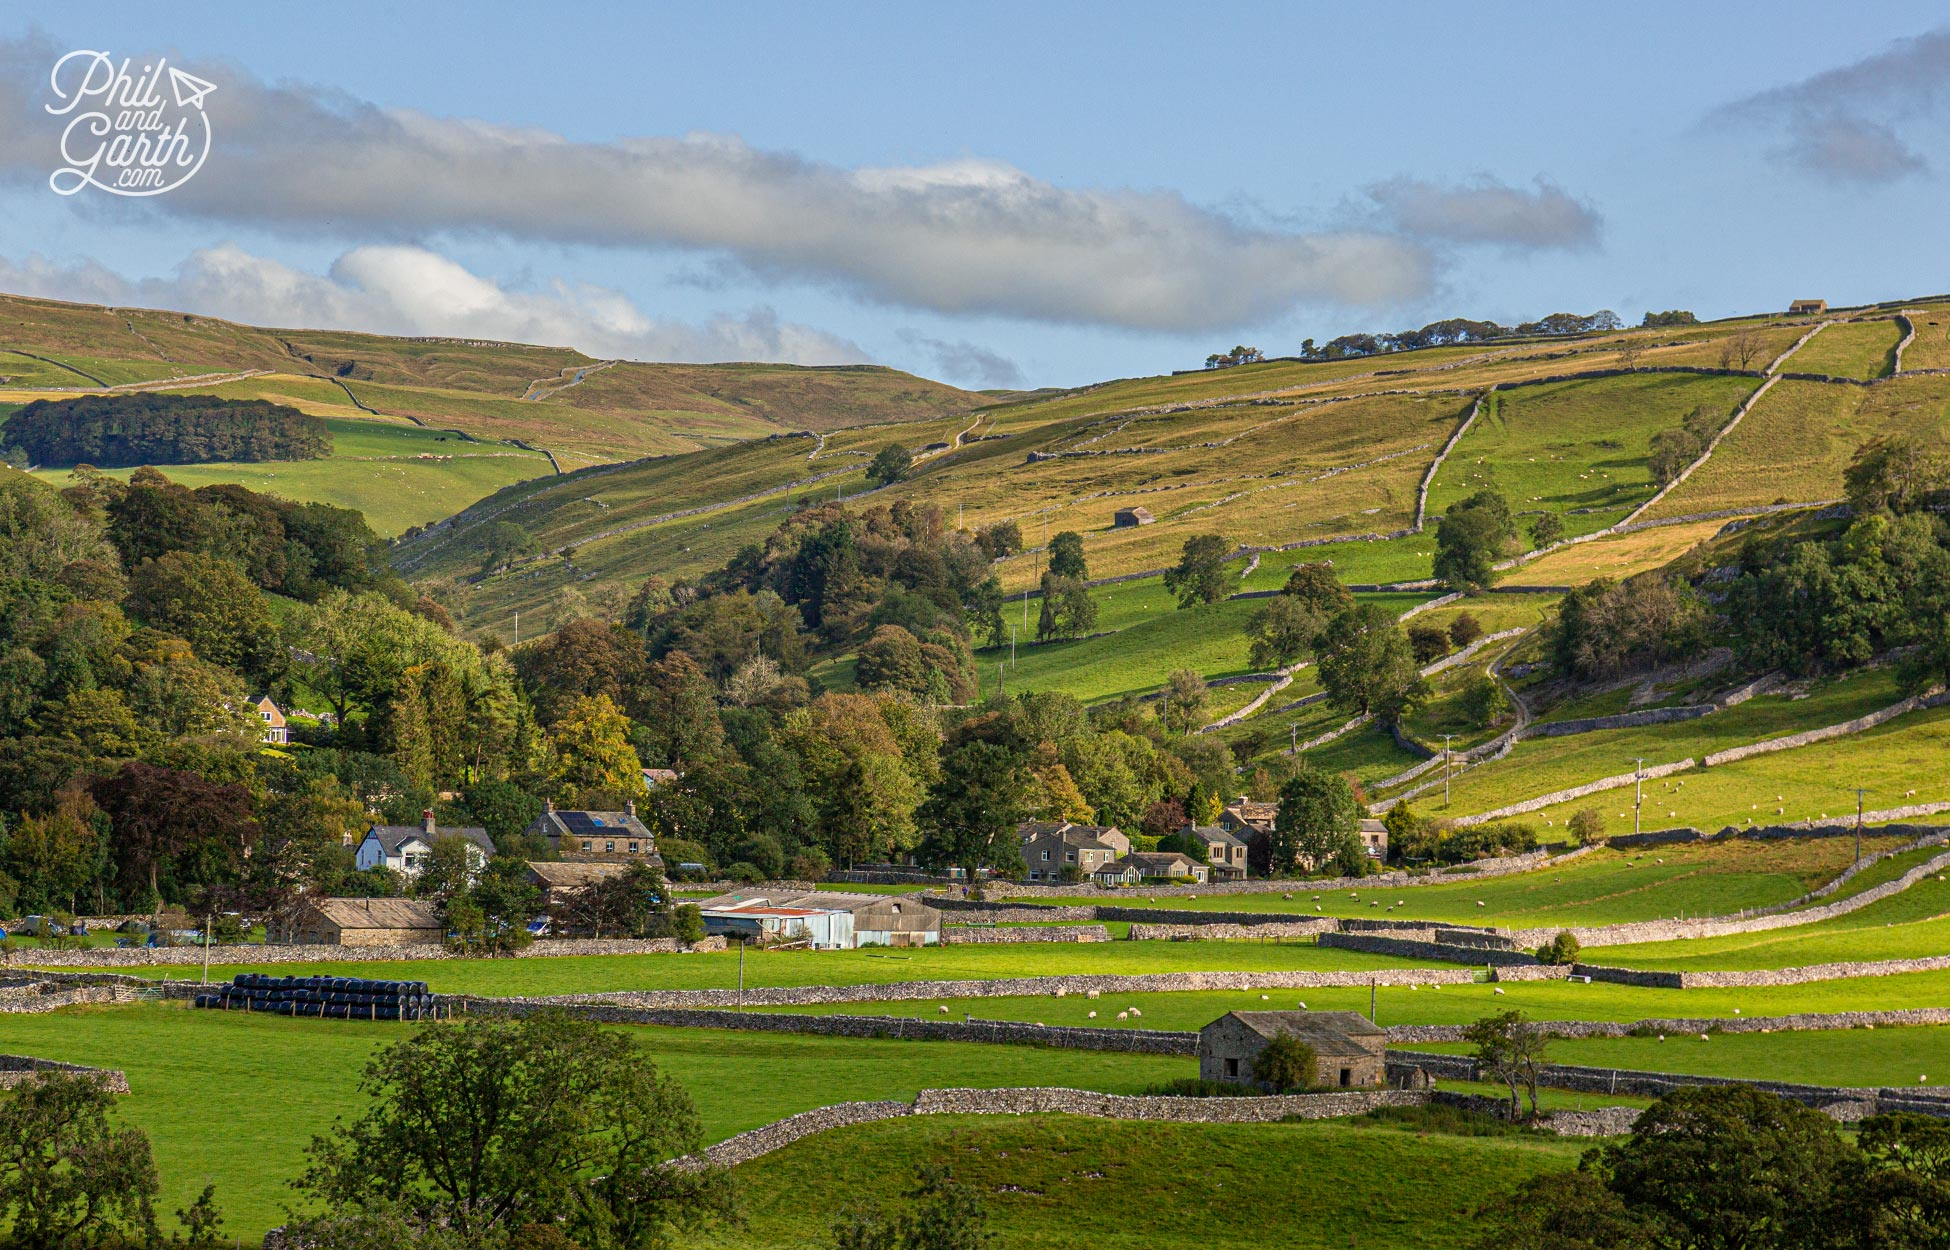 The glorious countryside of Wharfedale in the south of the Yorkshire Dales National Park